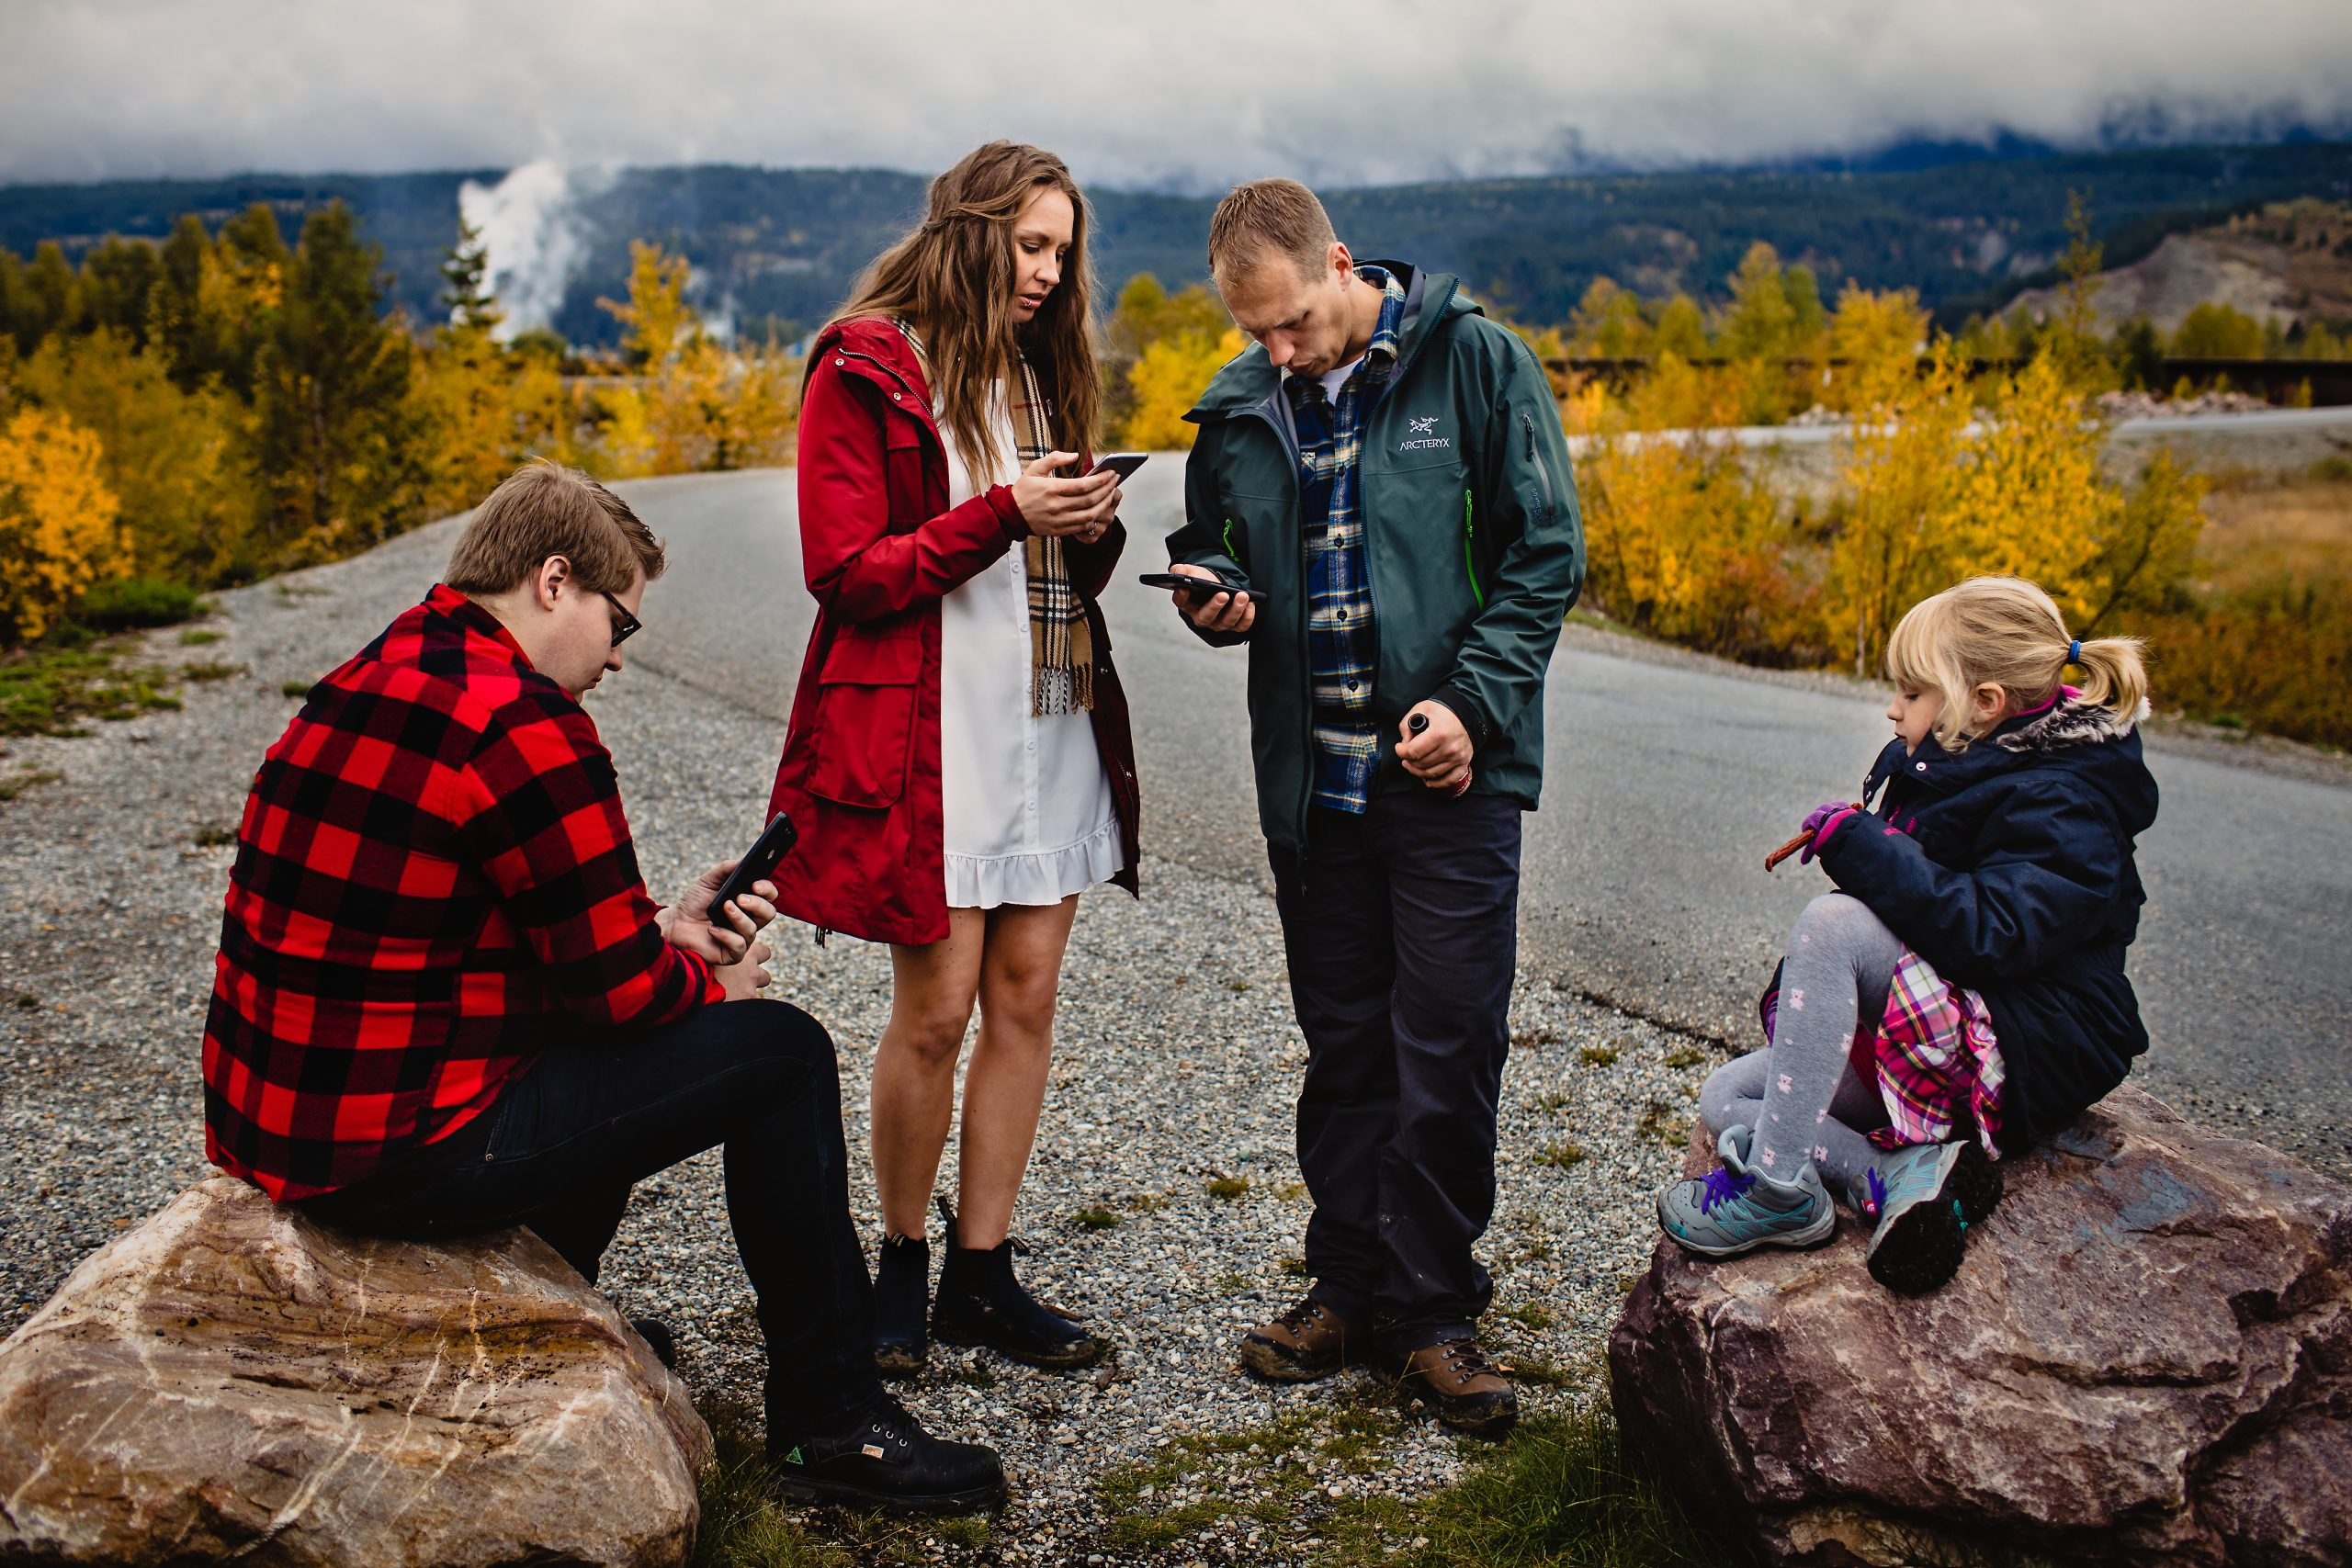 Four people sitting and standing roadside on a fall morning